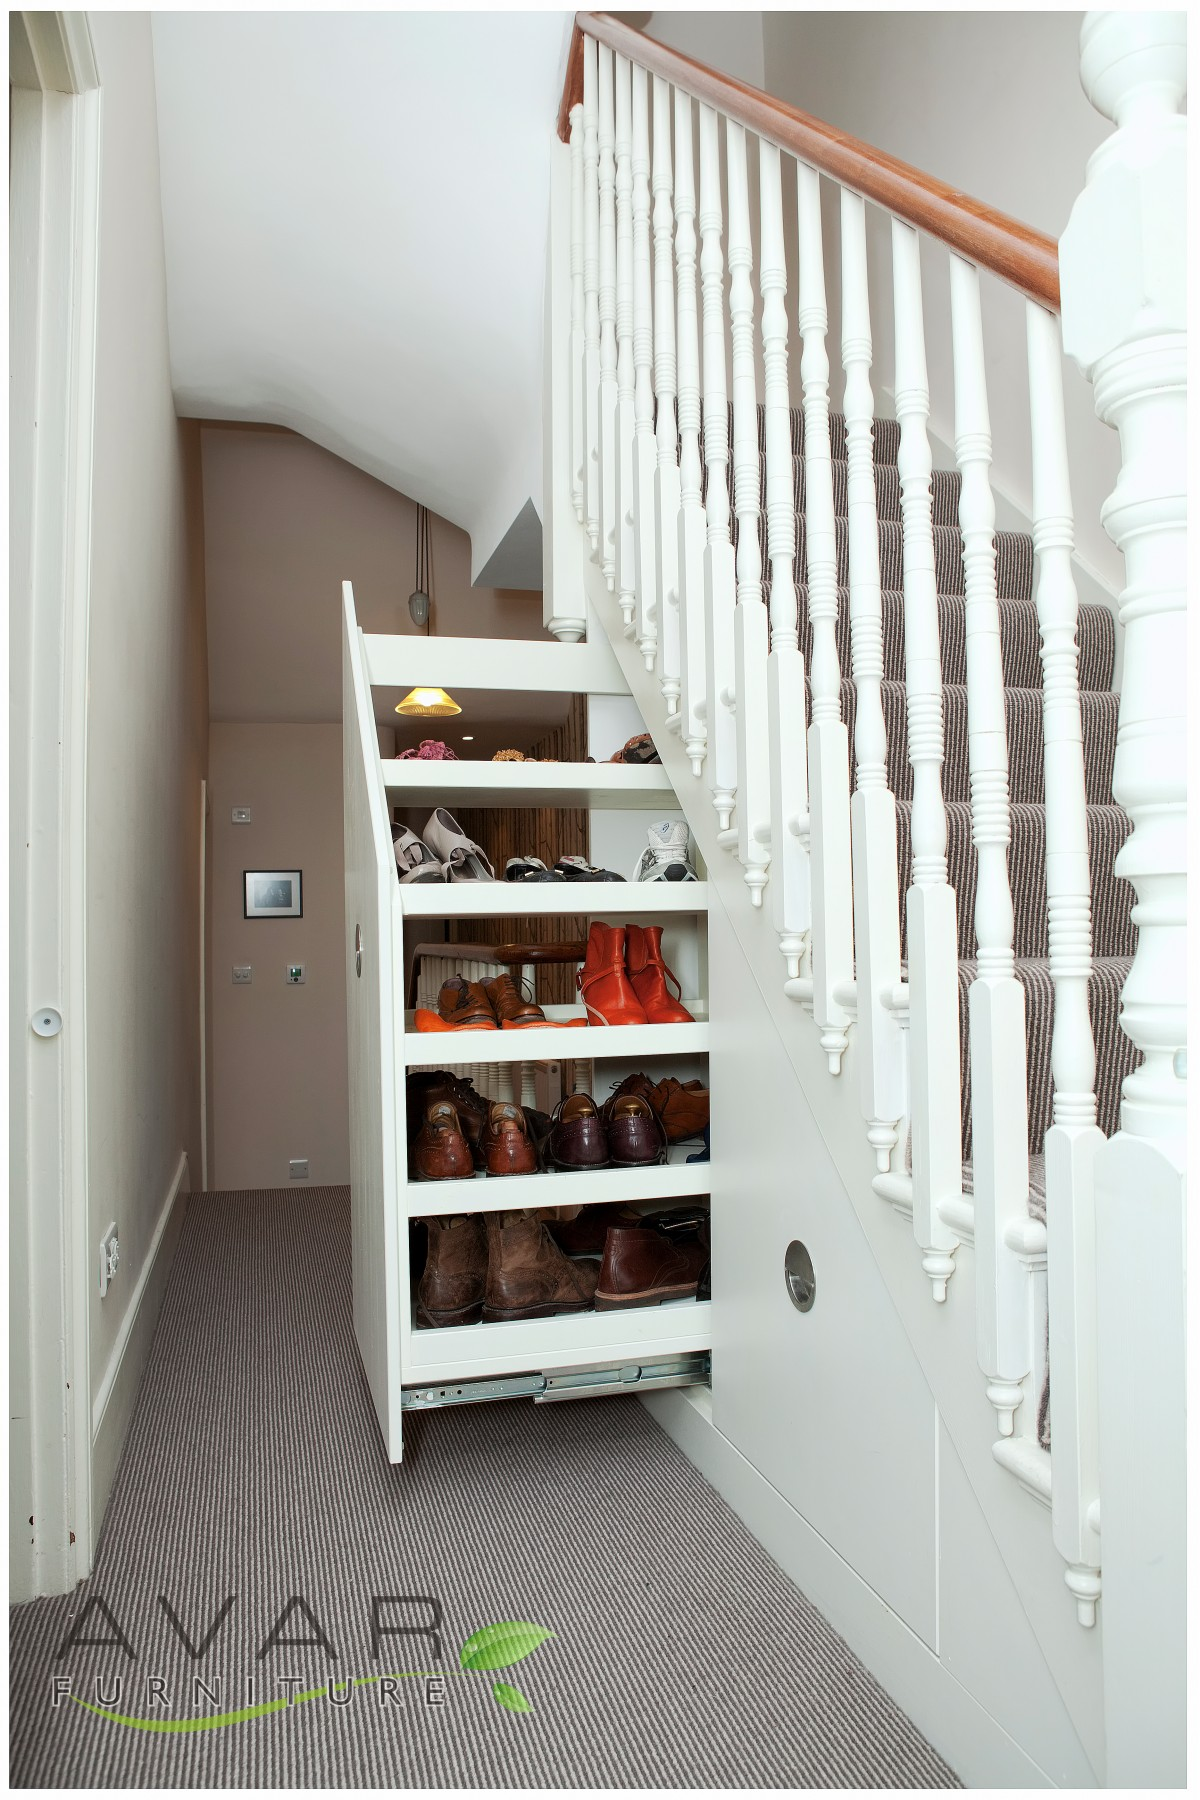 under stairs storage ideas gallery 14 north london. Black Bedroom Furniture Sets. Home Design Ideas